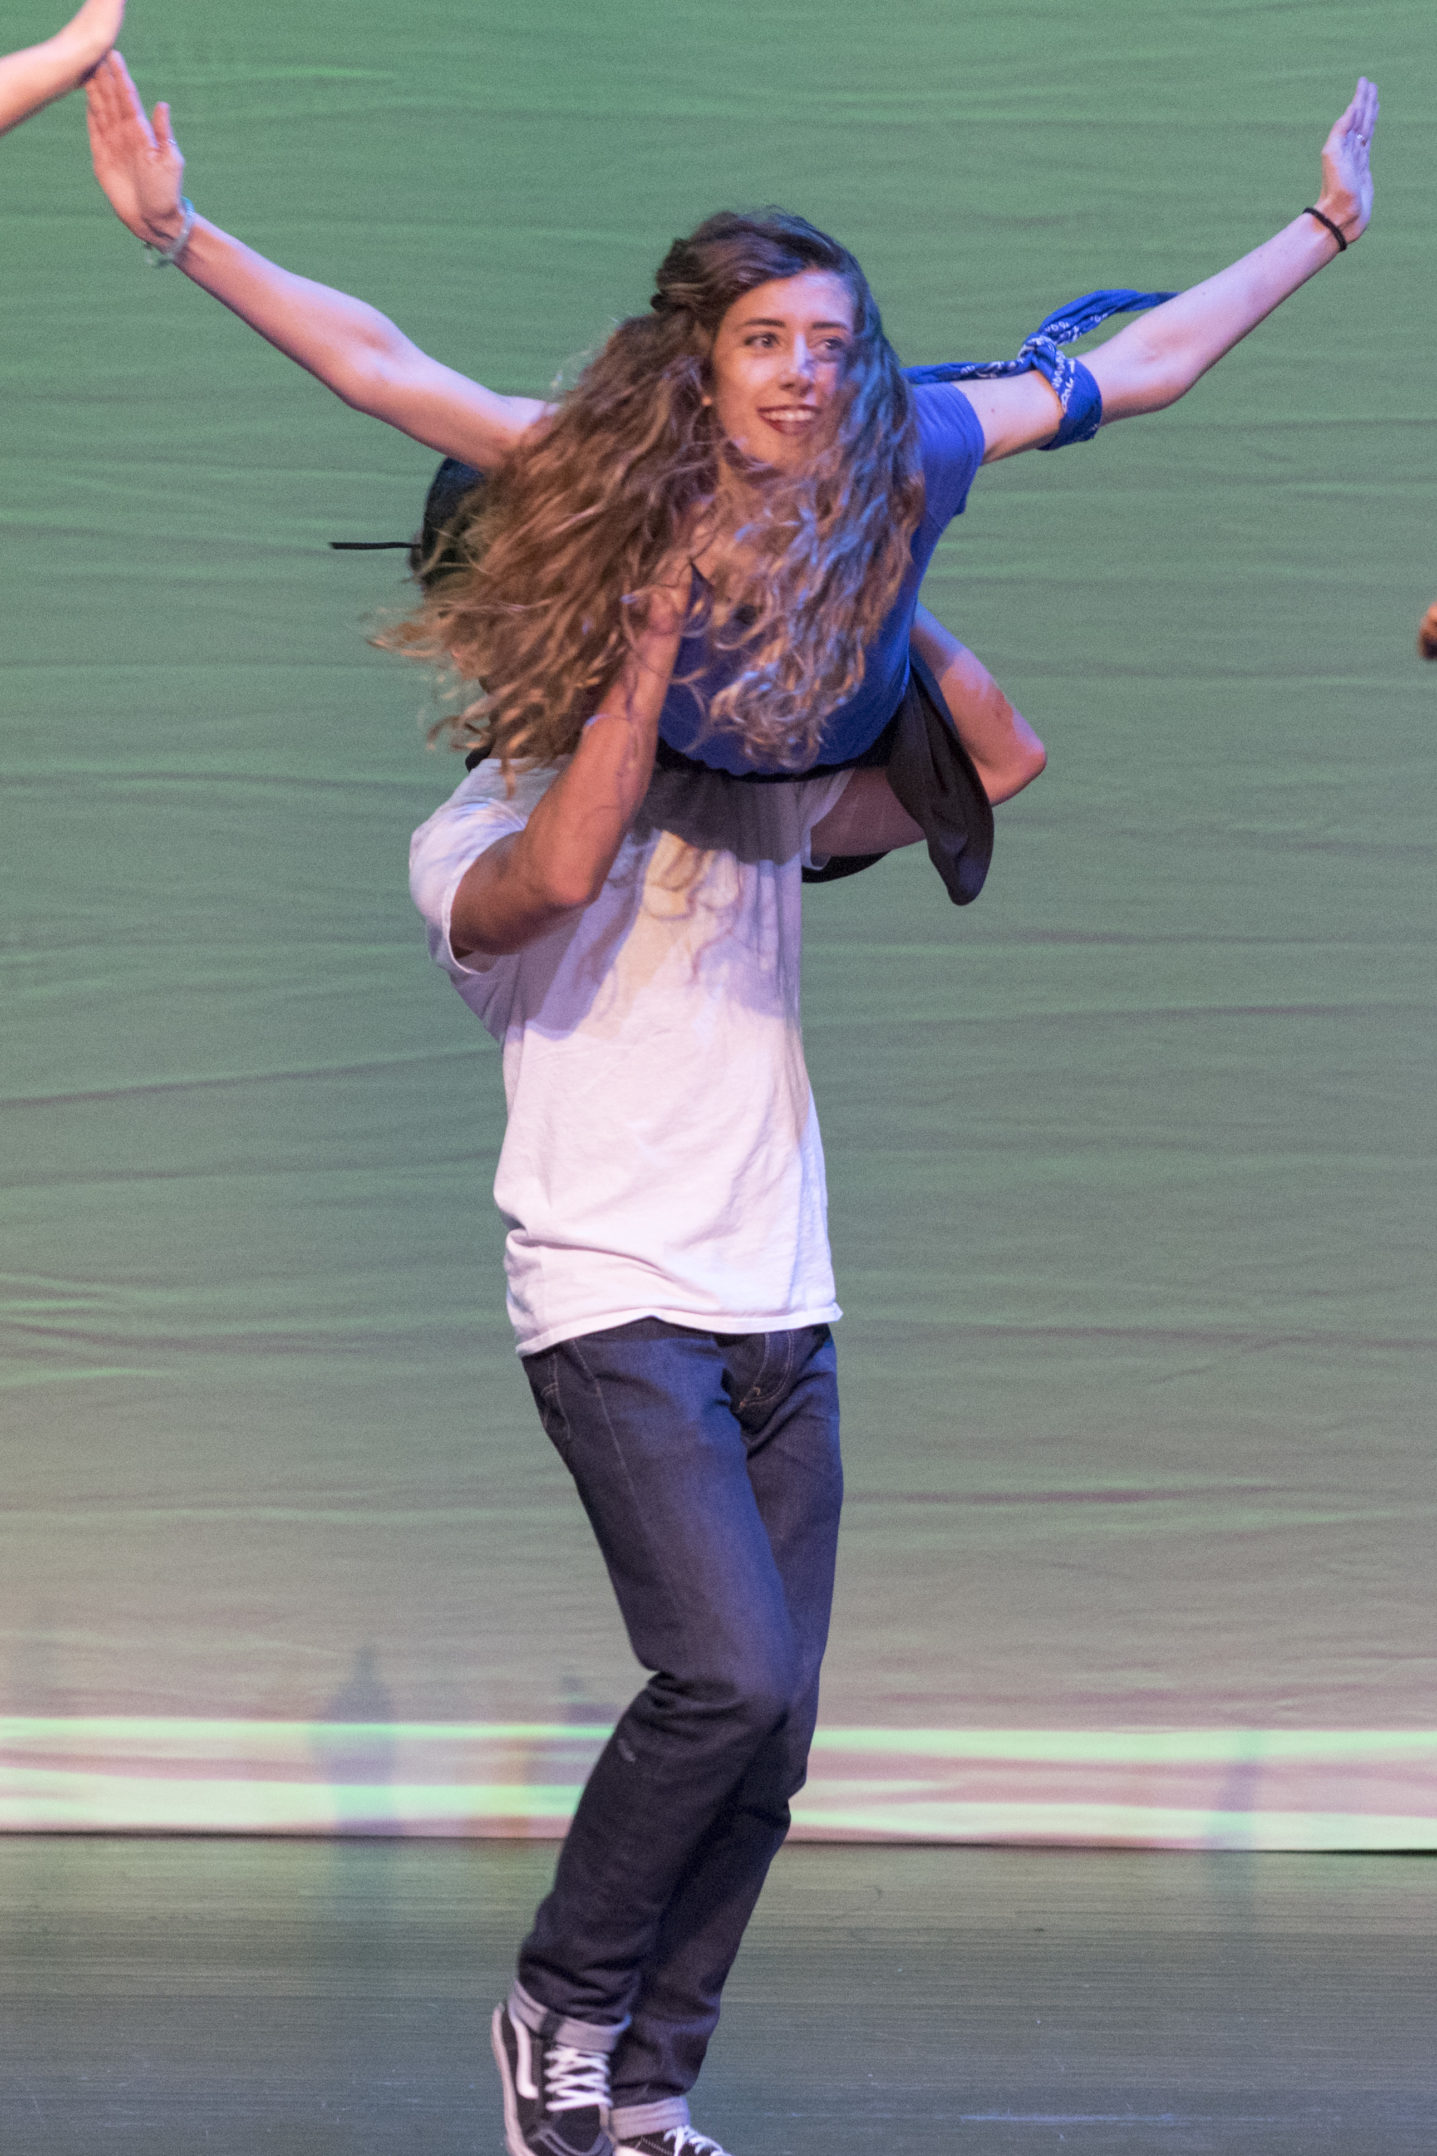 Daniel Moncada, '18, lifts Mikayla Cleary-Hammarstedt, '18, at FUSION on Thursday, Nov. 12, 2017, in Zoellner Arts Center. Moncada and Hammarstedt performed with the Latin Dance Club. (Roshan Giyanani/B&W Staff)